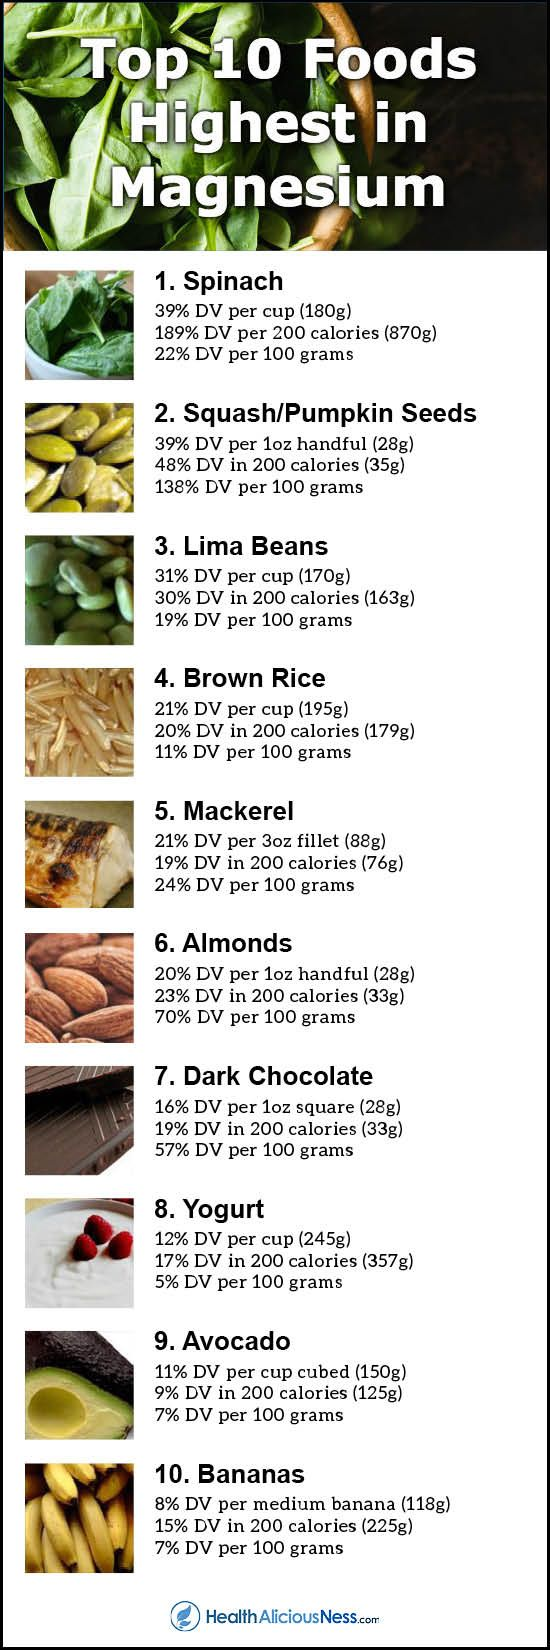 Magnesium is an essential mineral required by the body for maintaining normal muscle and nerve function, keeping a healthy immune system, maintaining heart rhythm, and building strong bones. High magnesium foods include dark leafy greens, seeds, beans, whole grains, fish, nuts, dark chocolate, yogurt, avocados, bananas and more. The current daily value (DV) for magnesium is 400mg.